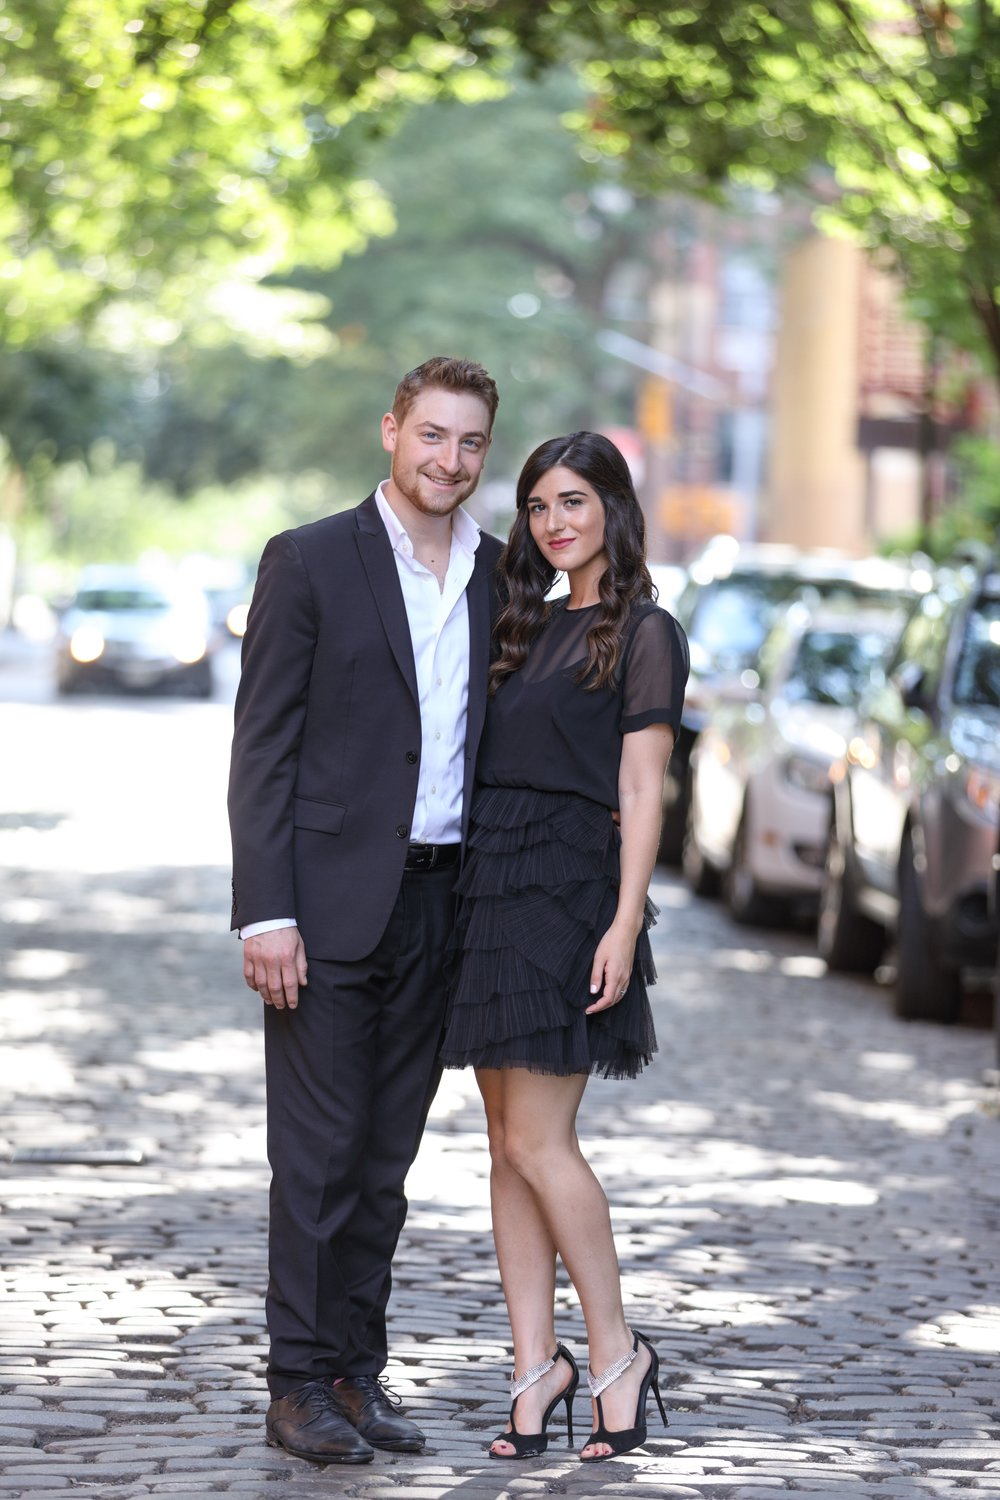 Why We Decided To Get Married On September 11 Esther Santer Fashion Blog NYC Street Style Blogger Outfits OOTD Trendy Engagement Shoot Photoshoot Lilian Haidar Photography Wedding Season Date Shoes Dress Suit Fancy Formal Happy Smile Heels Hair Girl.JPG